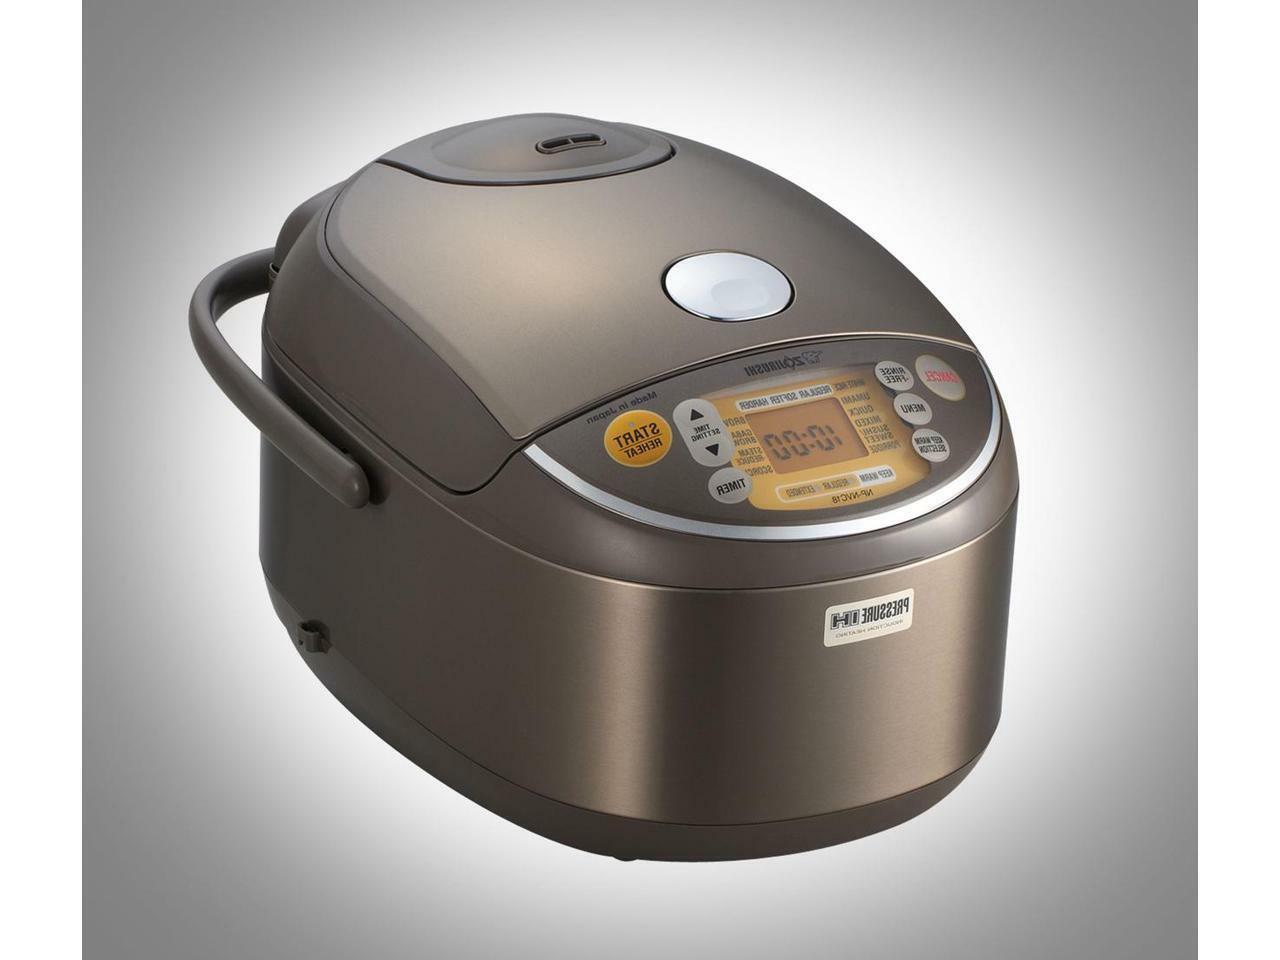 np nvc10 induction heating pressure cooker